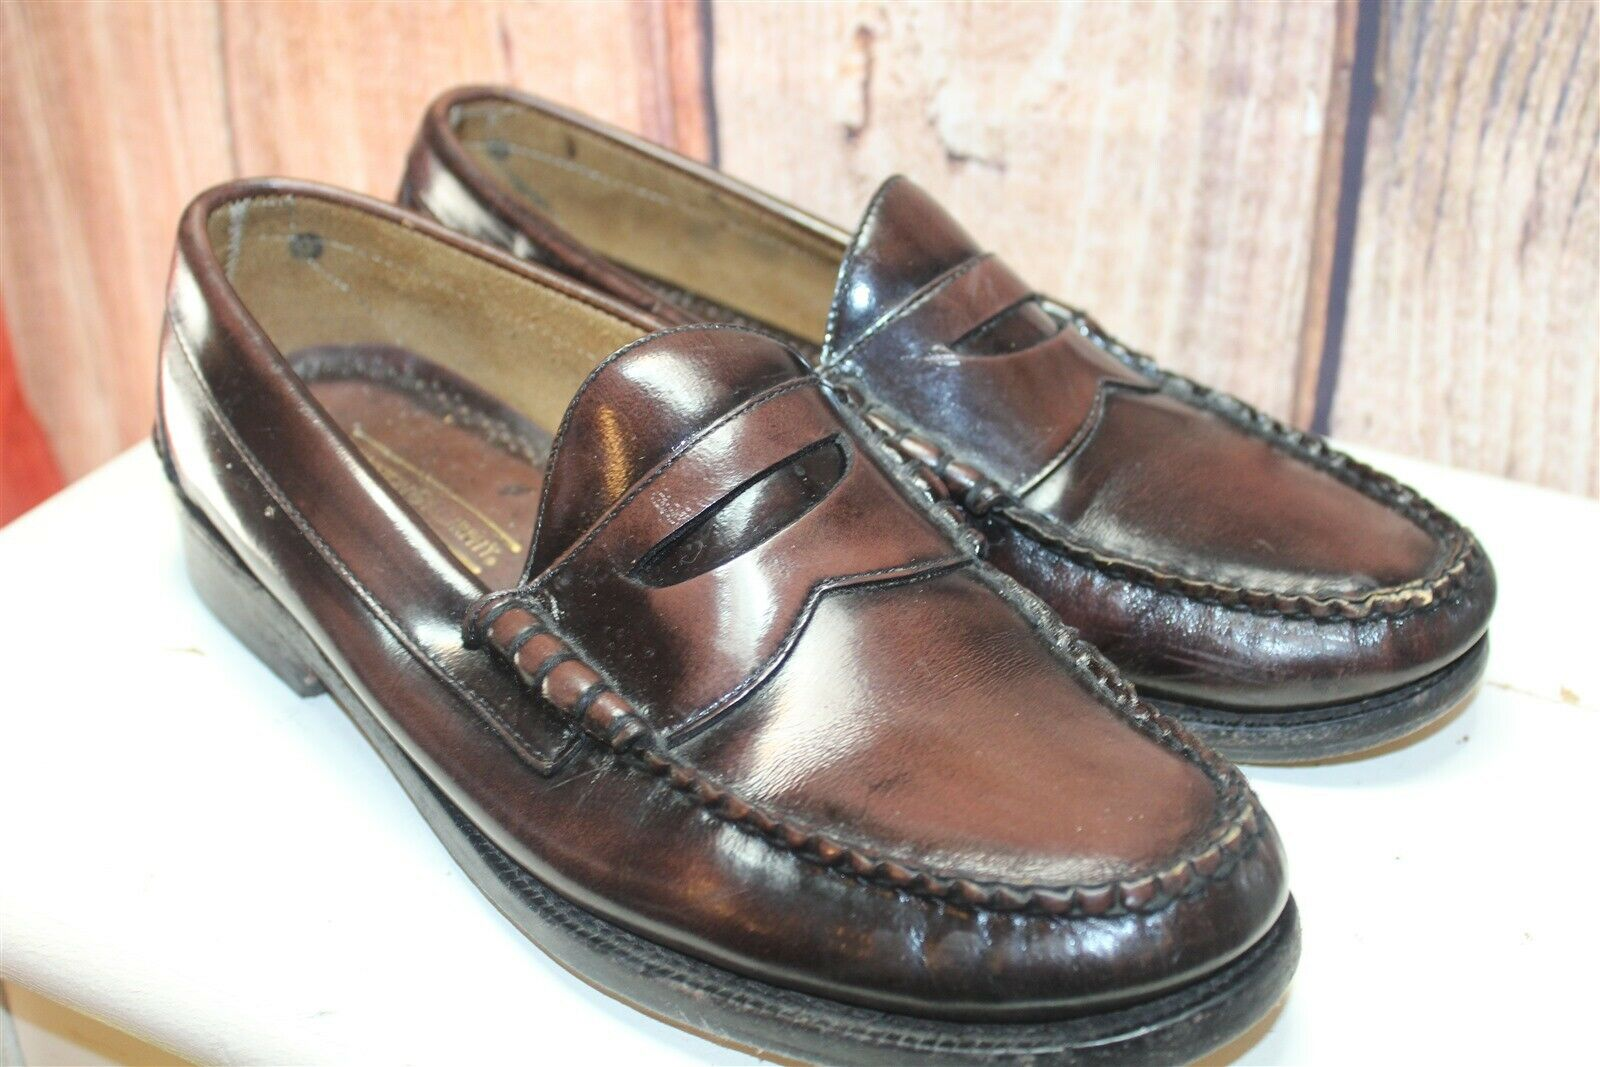 Johnston & Murphy Aristocraft Brown Leather Loafers 8.5 E Men's shoes